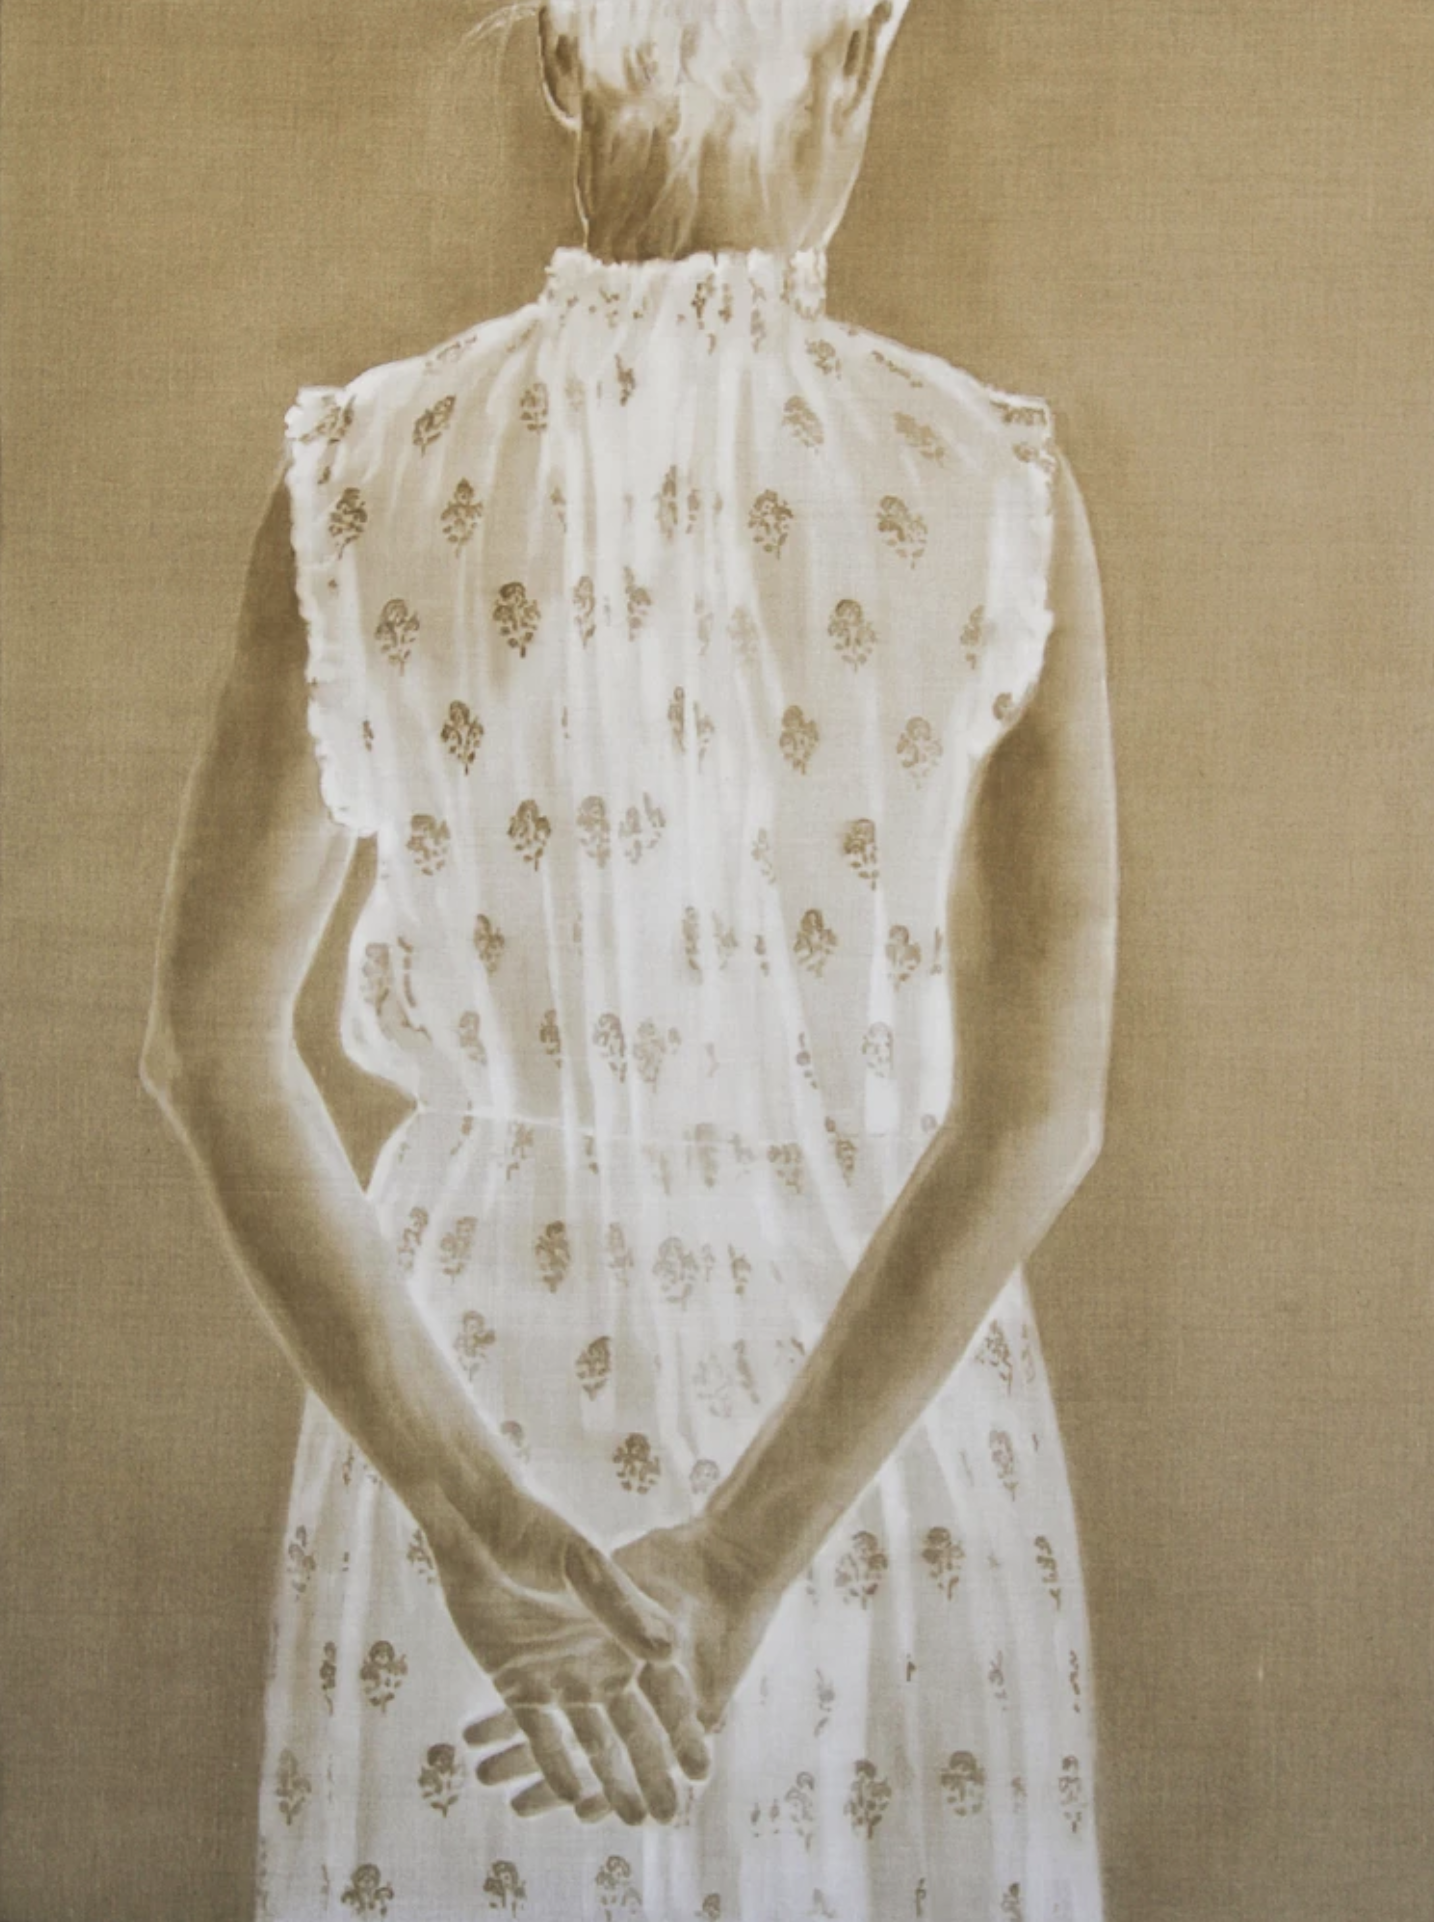 JACQUELINE HENNESSY  The Dress I , 2017 oil on linen 122 x 91.5 cm9